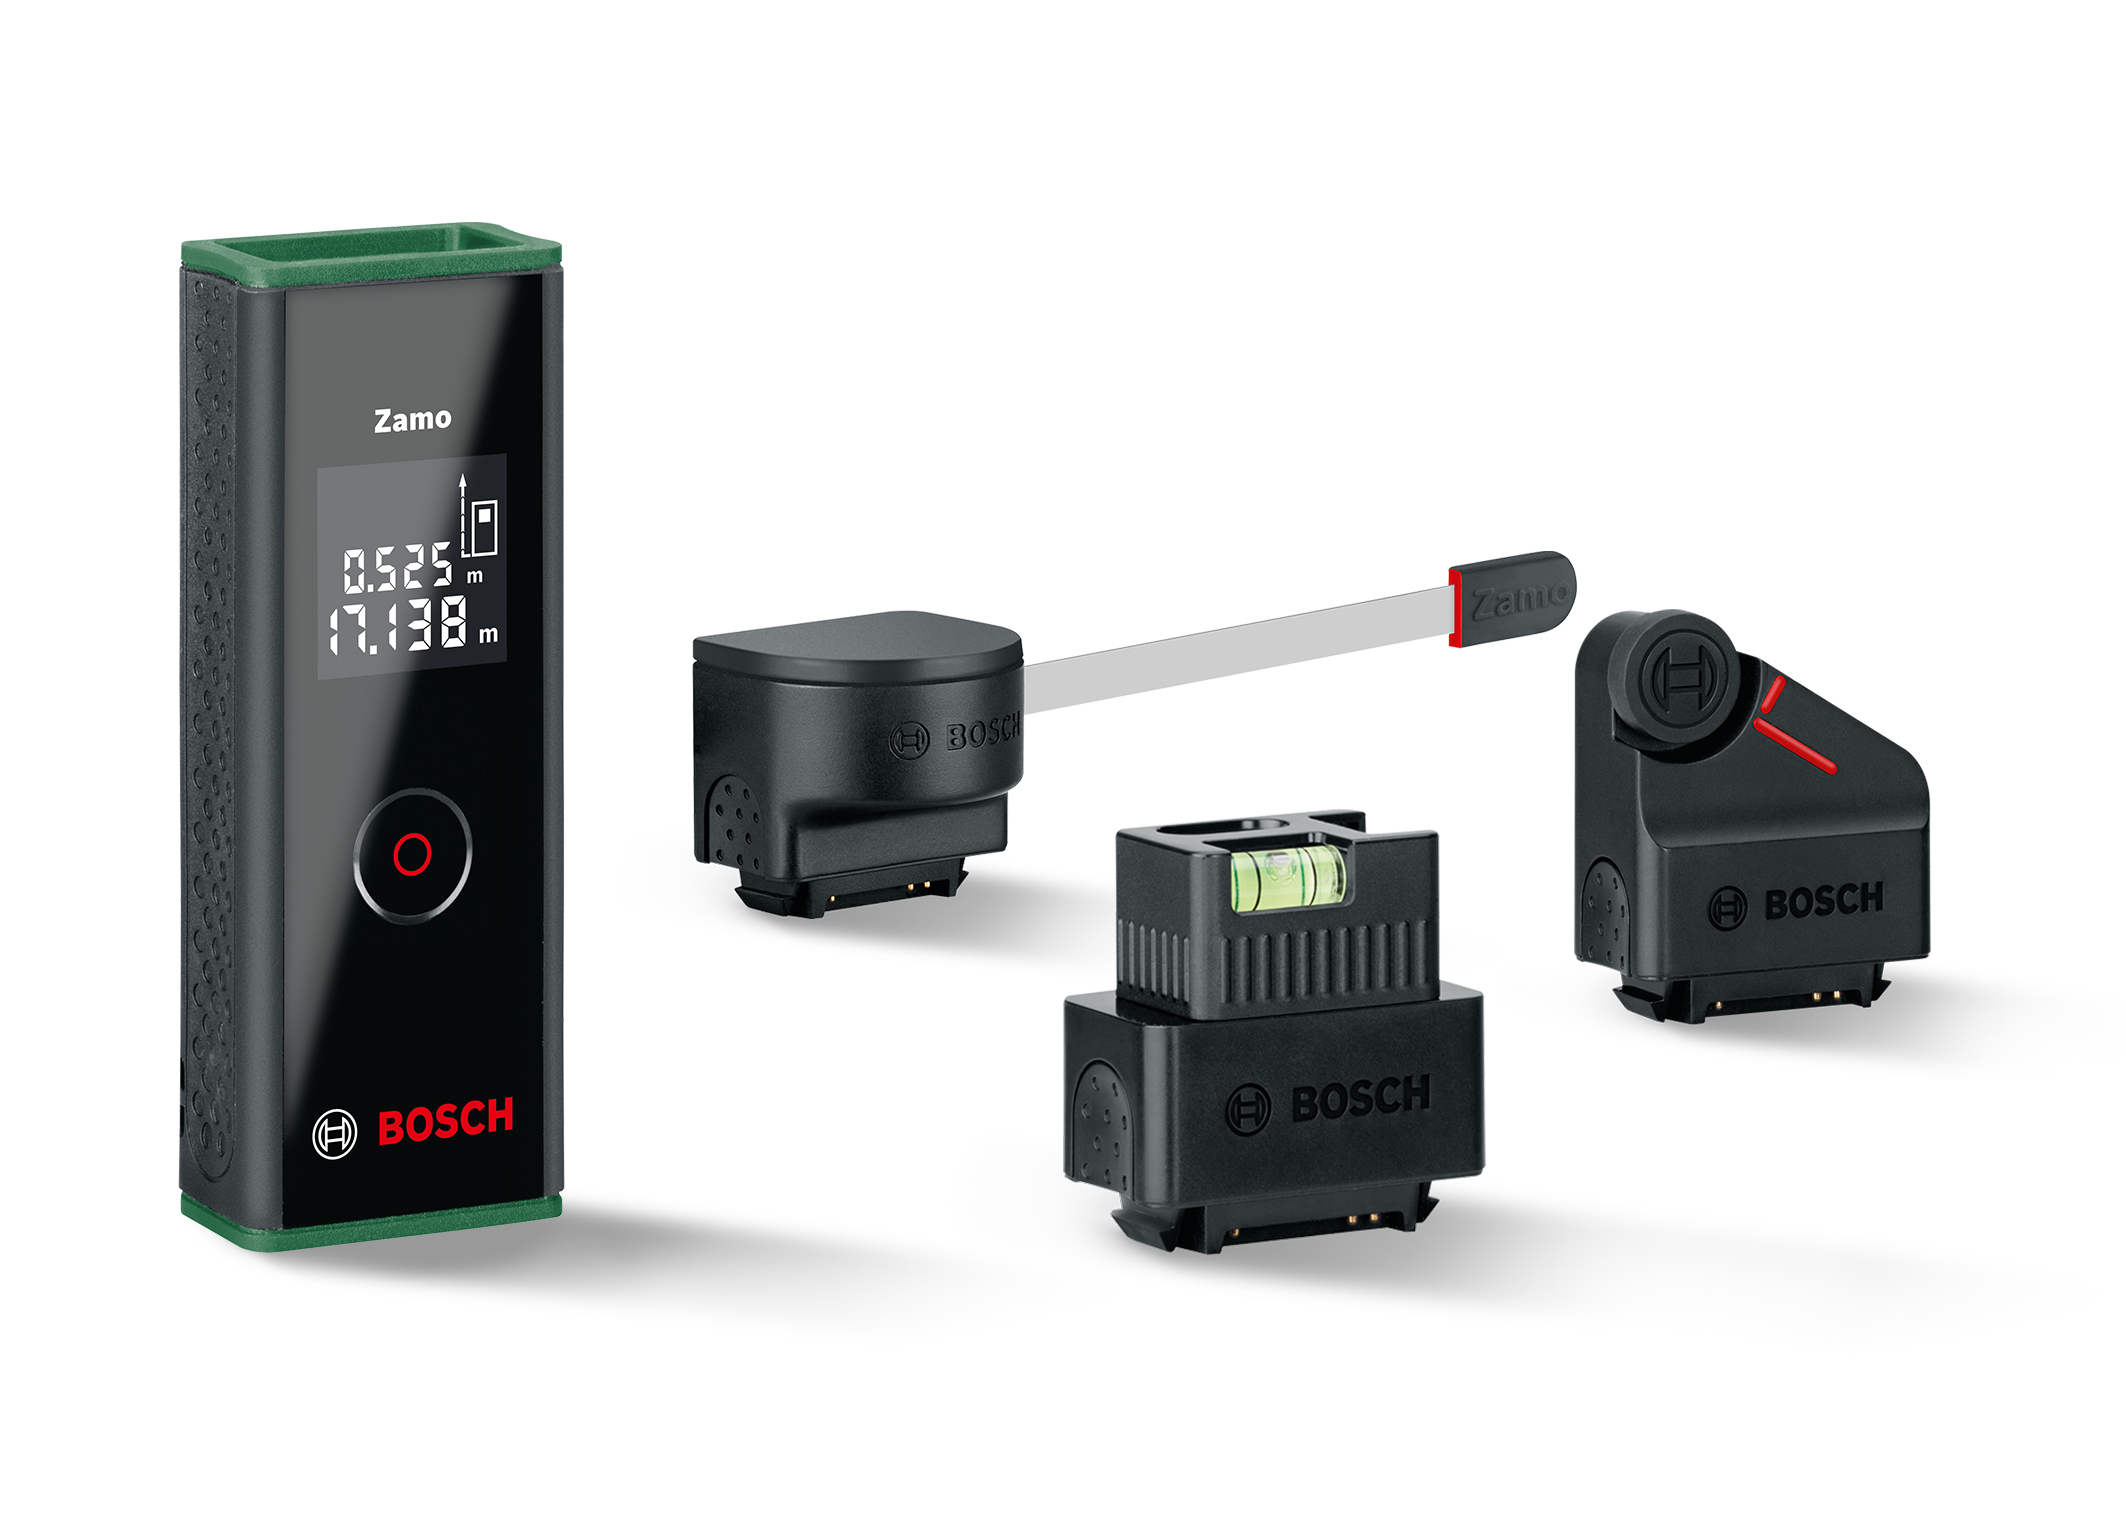 World's first laser measure with adapters: the new Zamo generation from Bosch